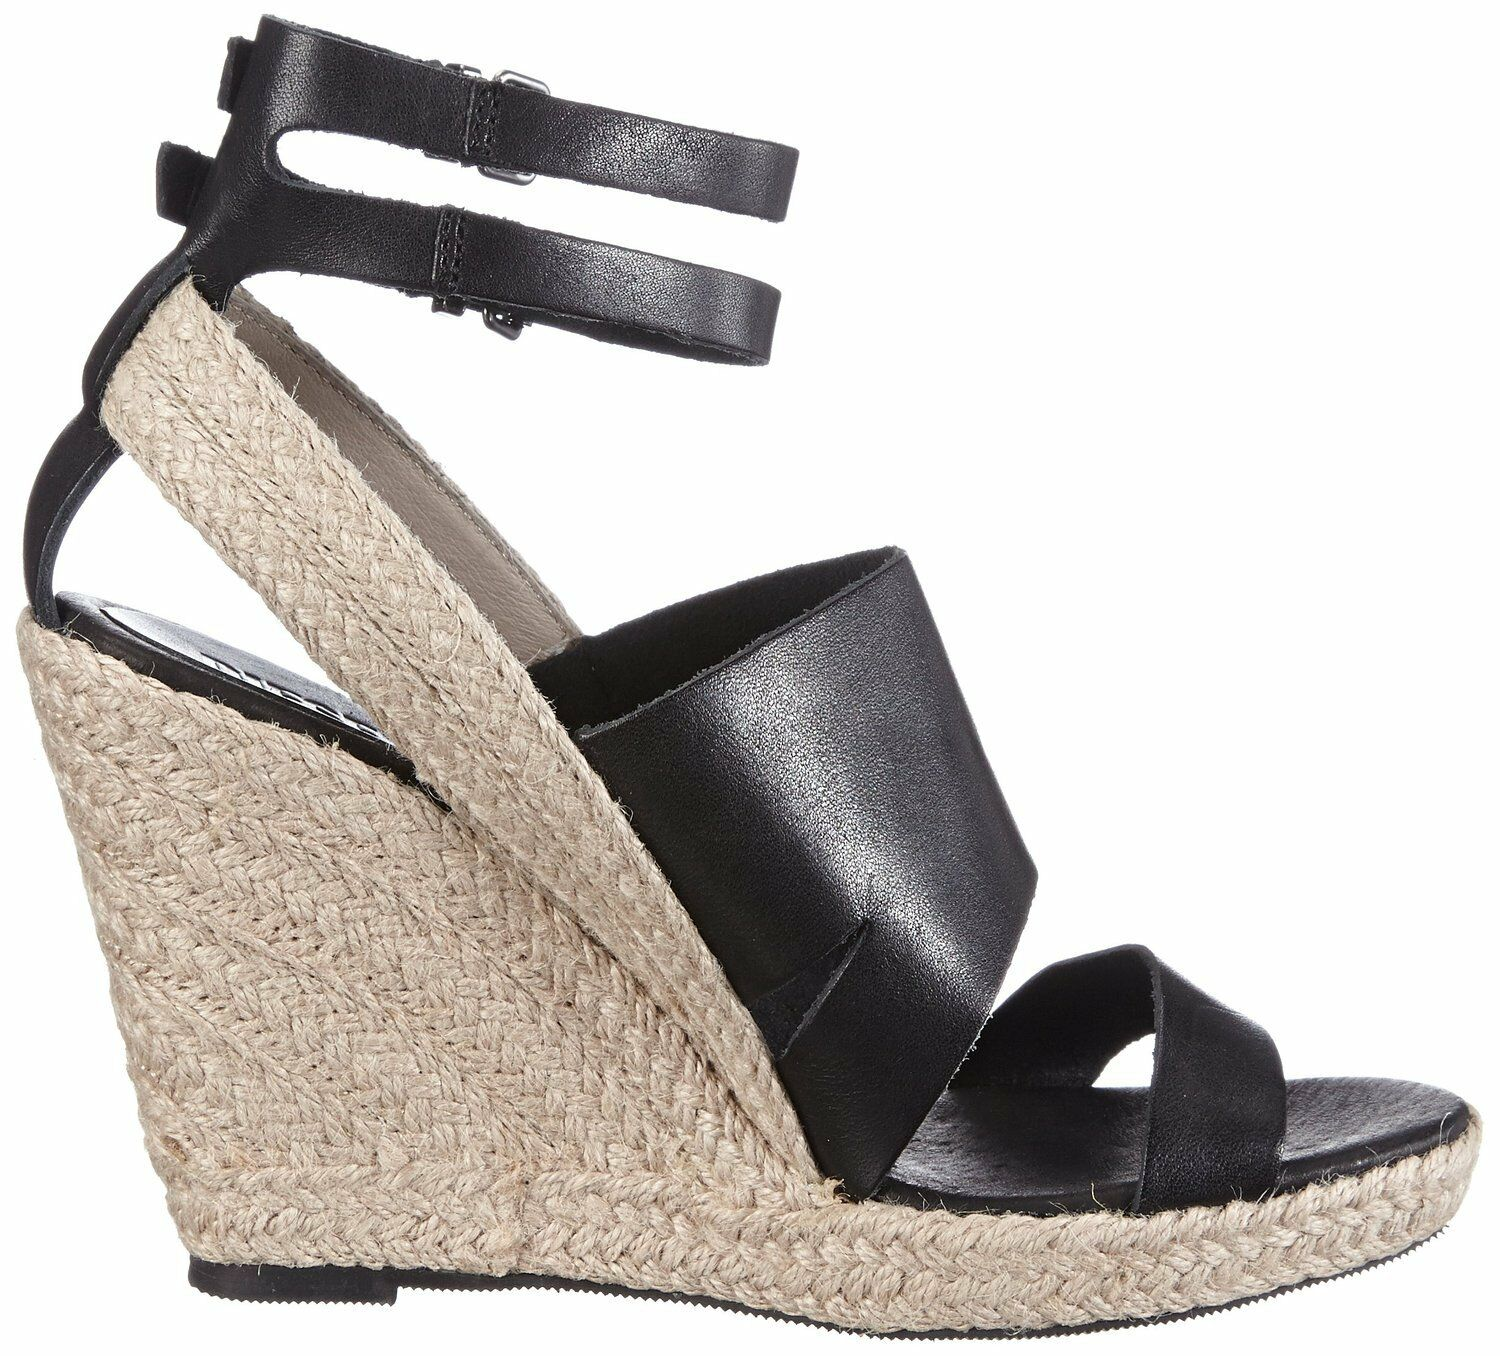 Diesel Alma Leather Wedge Sandal SIze 7.5